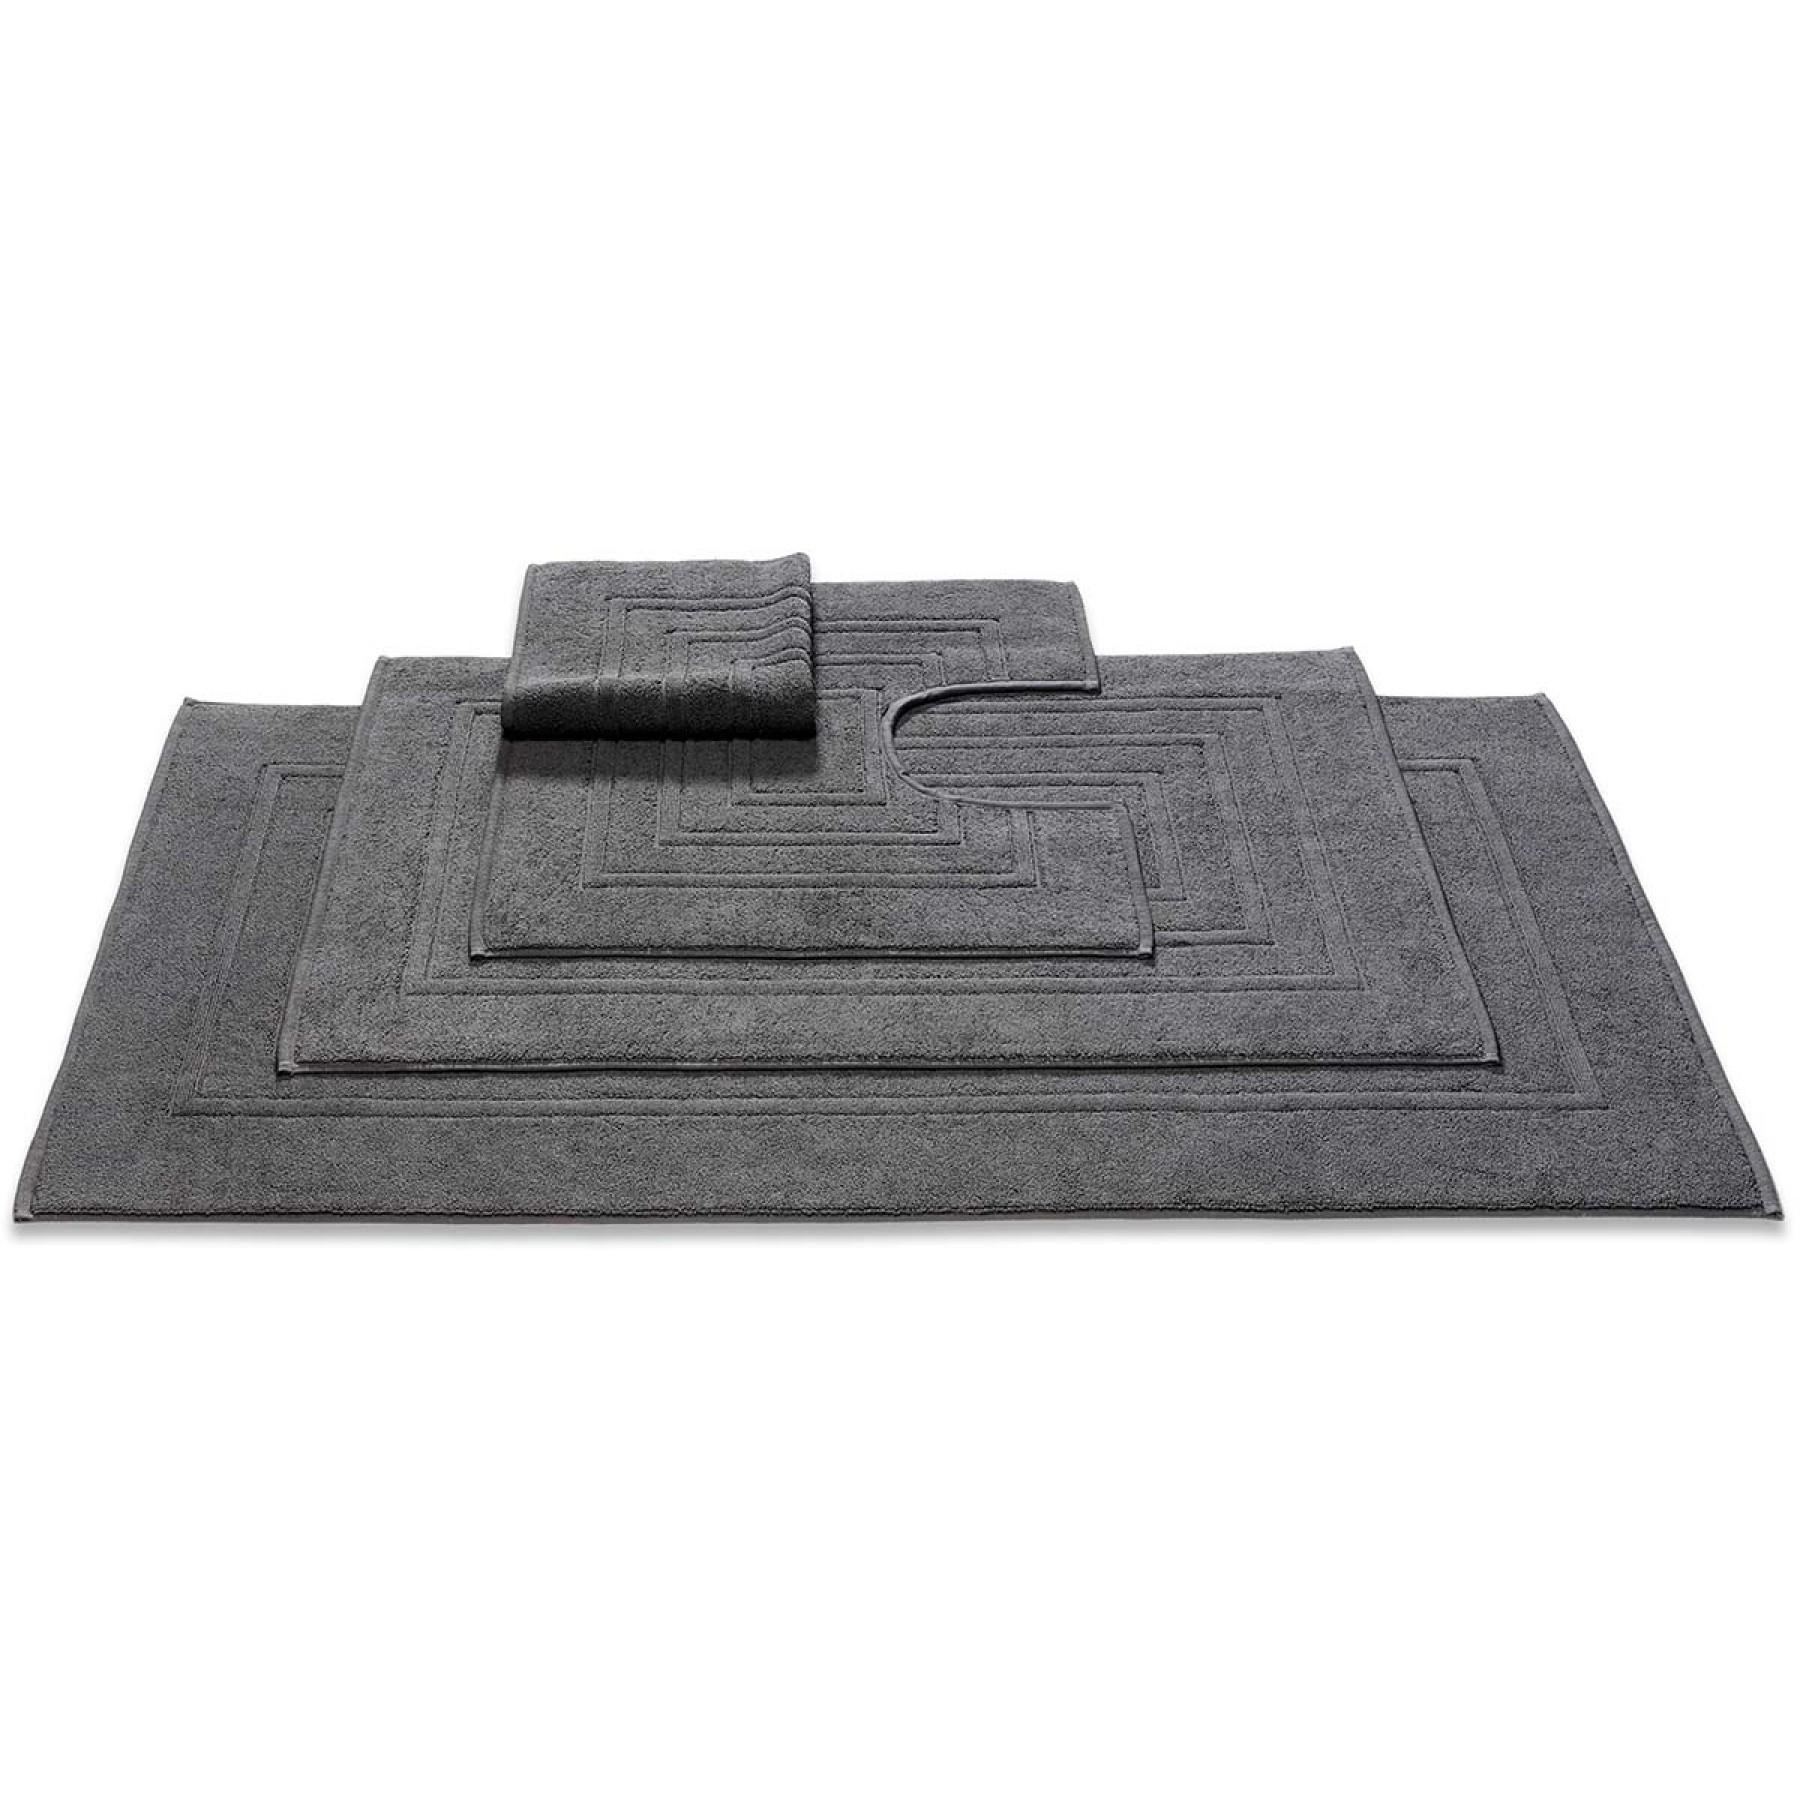 Vandyck Toiletmat Houston Dark Grey